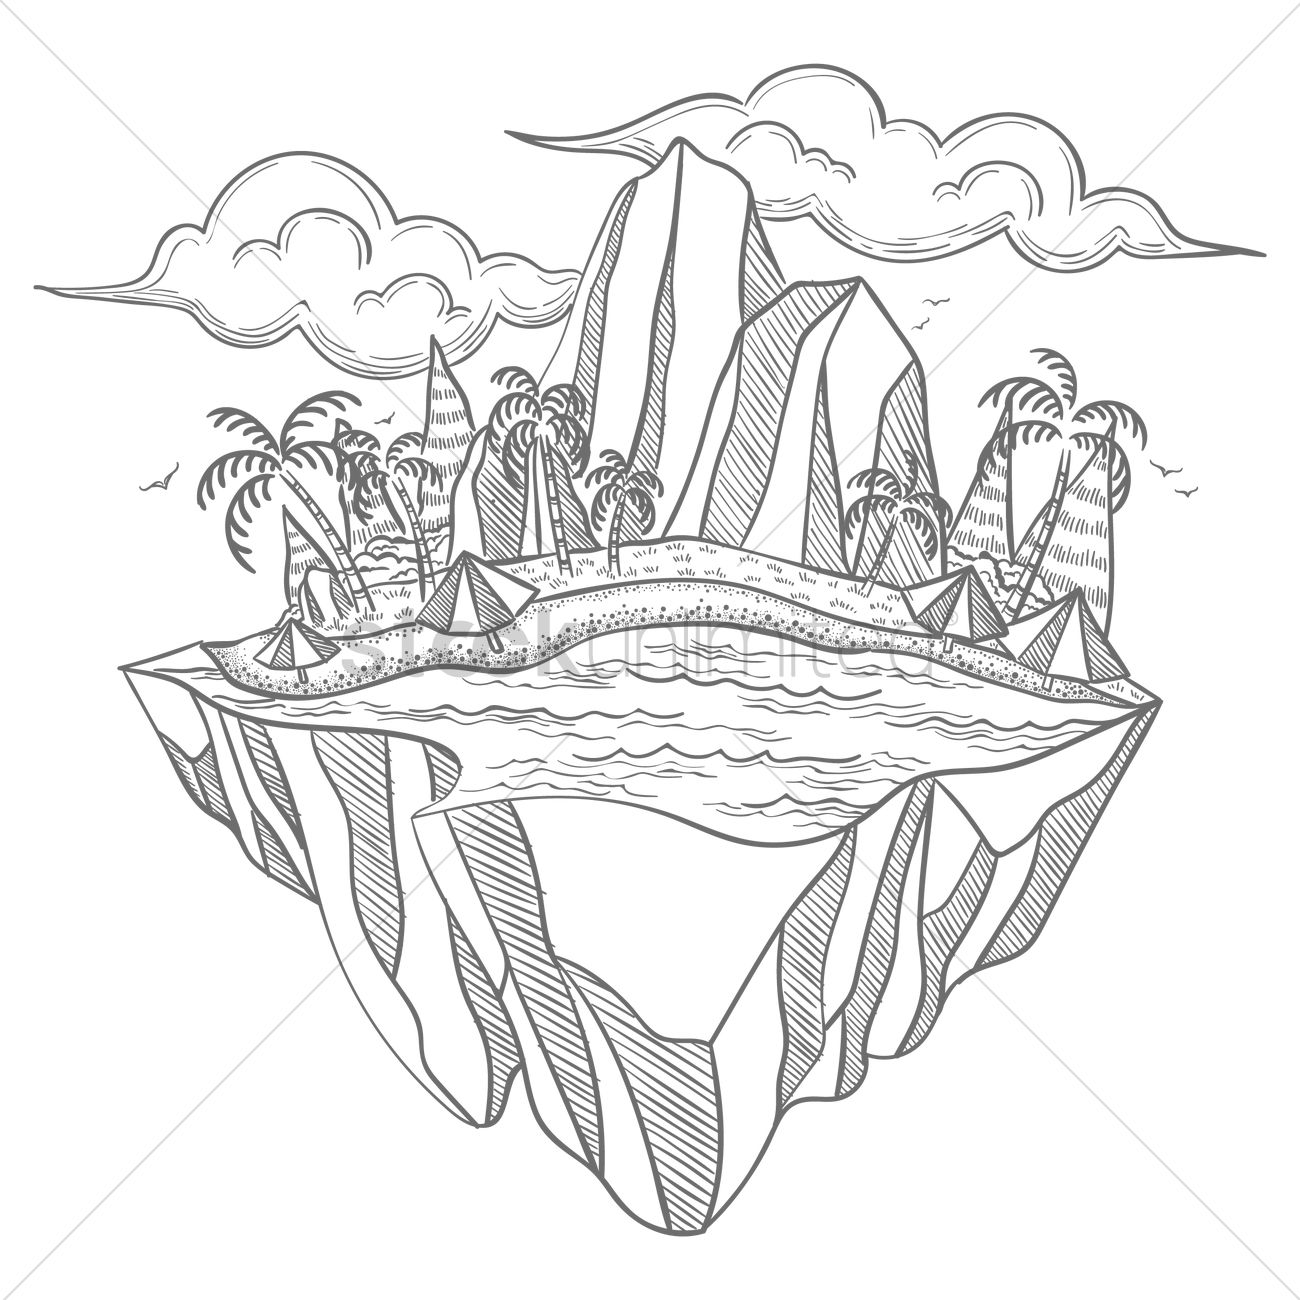 Floating Island coloring #6, Download drawings